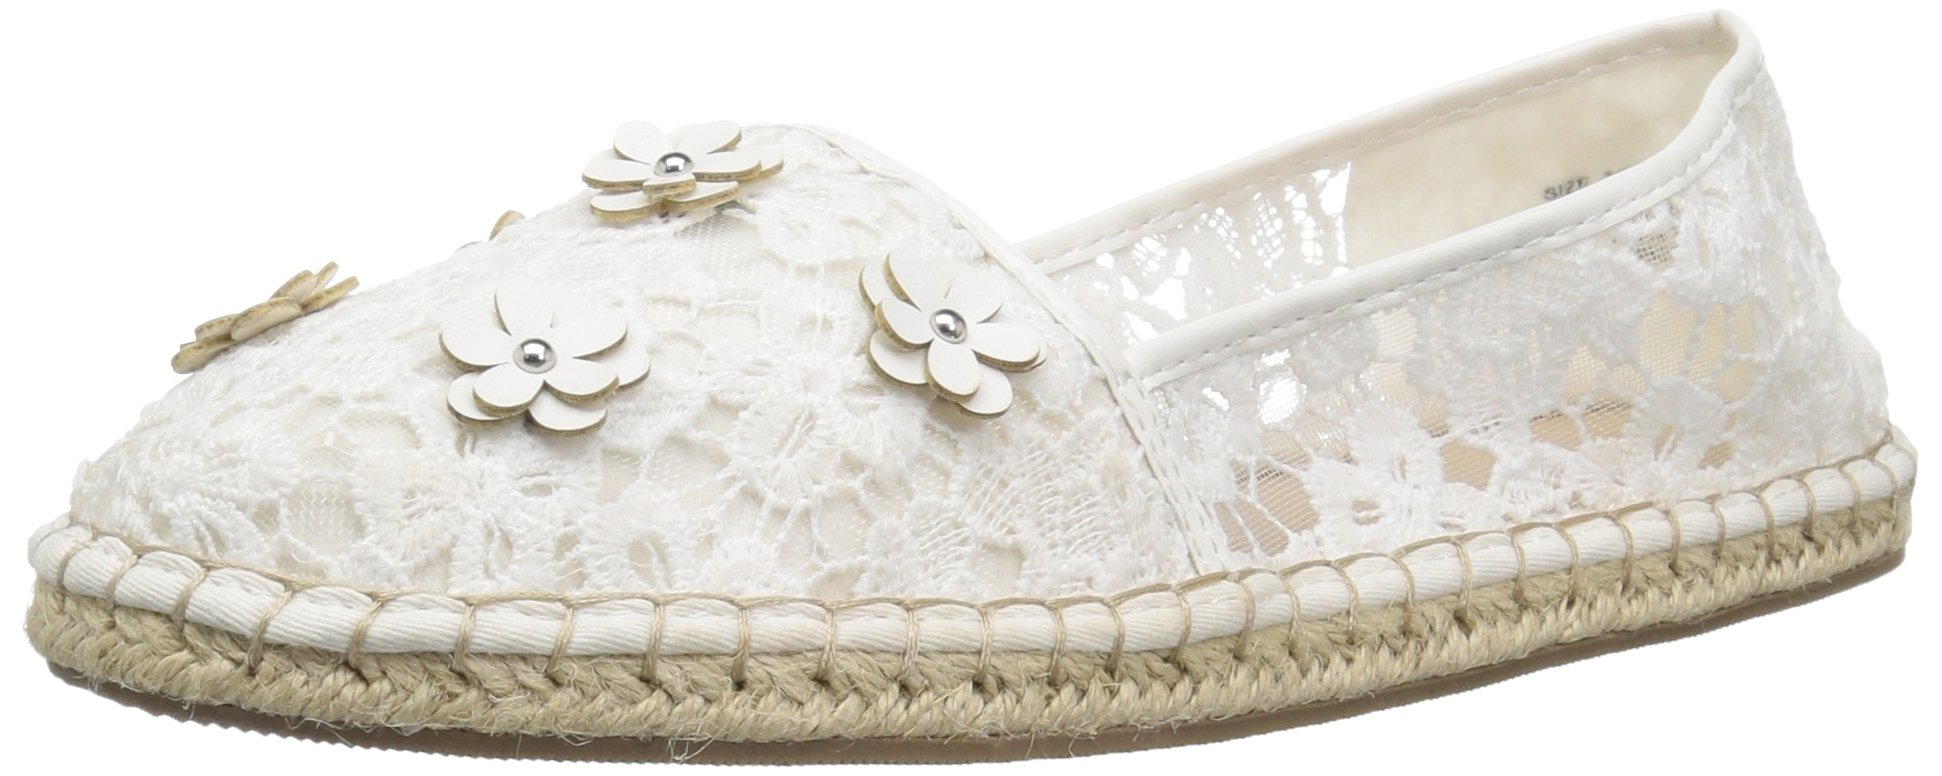 The Children's Place Girls' BG Lace Espadril Slipper, White, Youth 3 Medium US Big Kid by The Children's Place (Image #1)